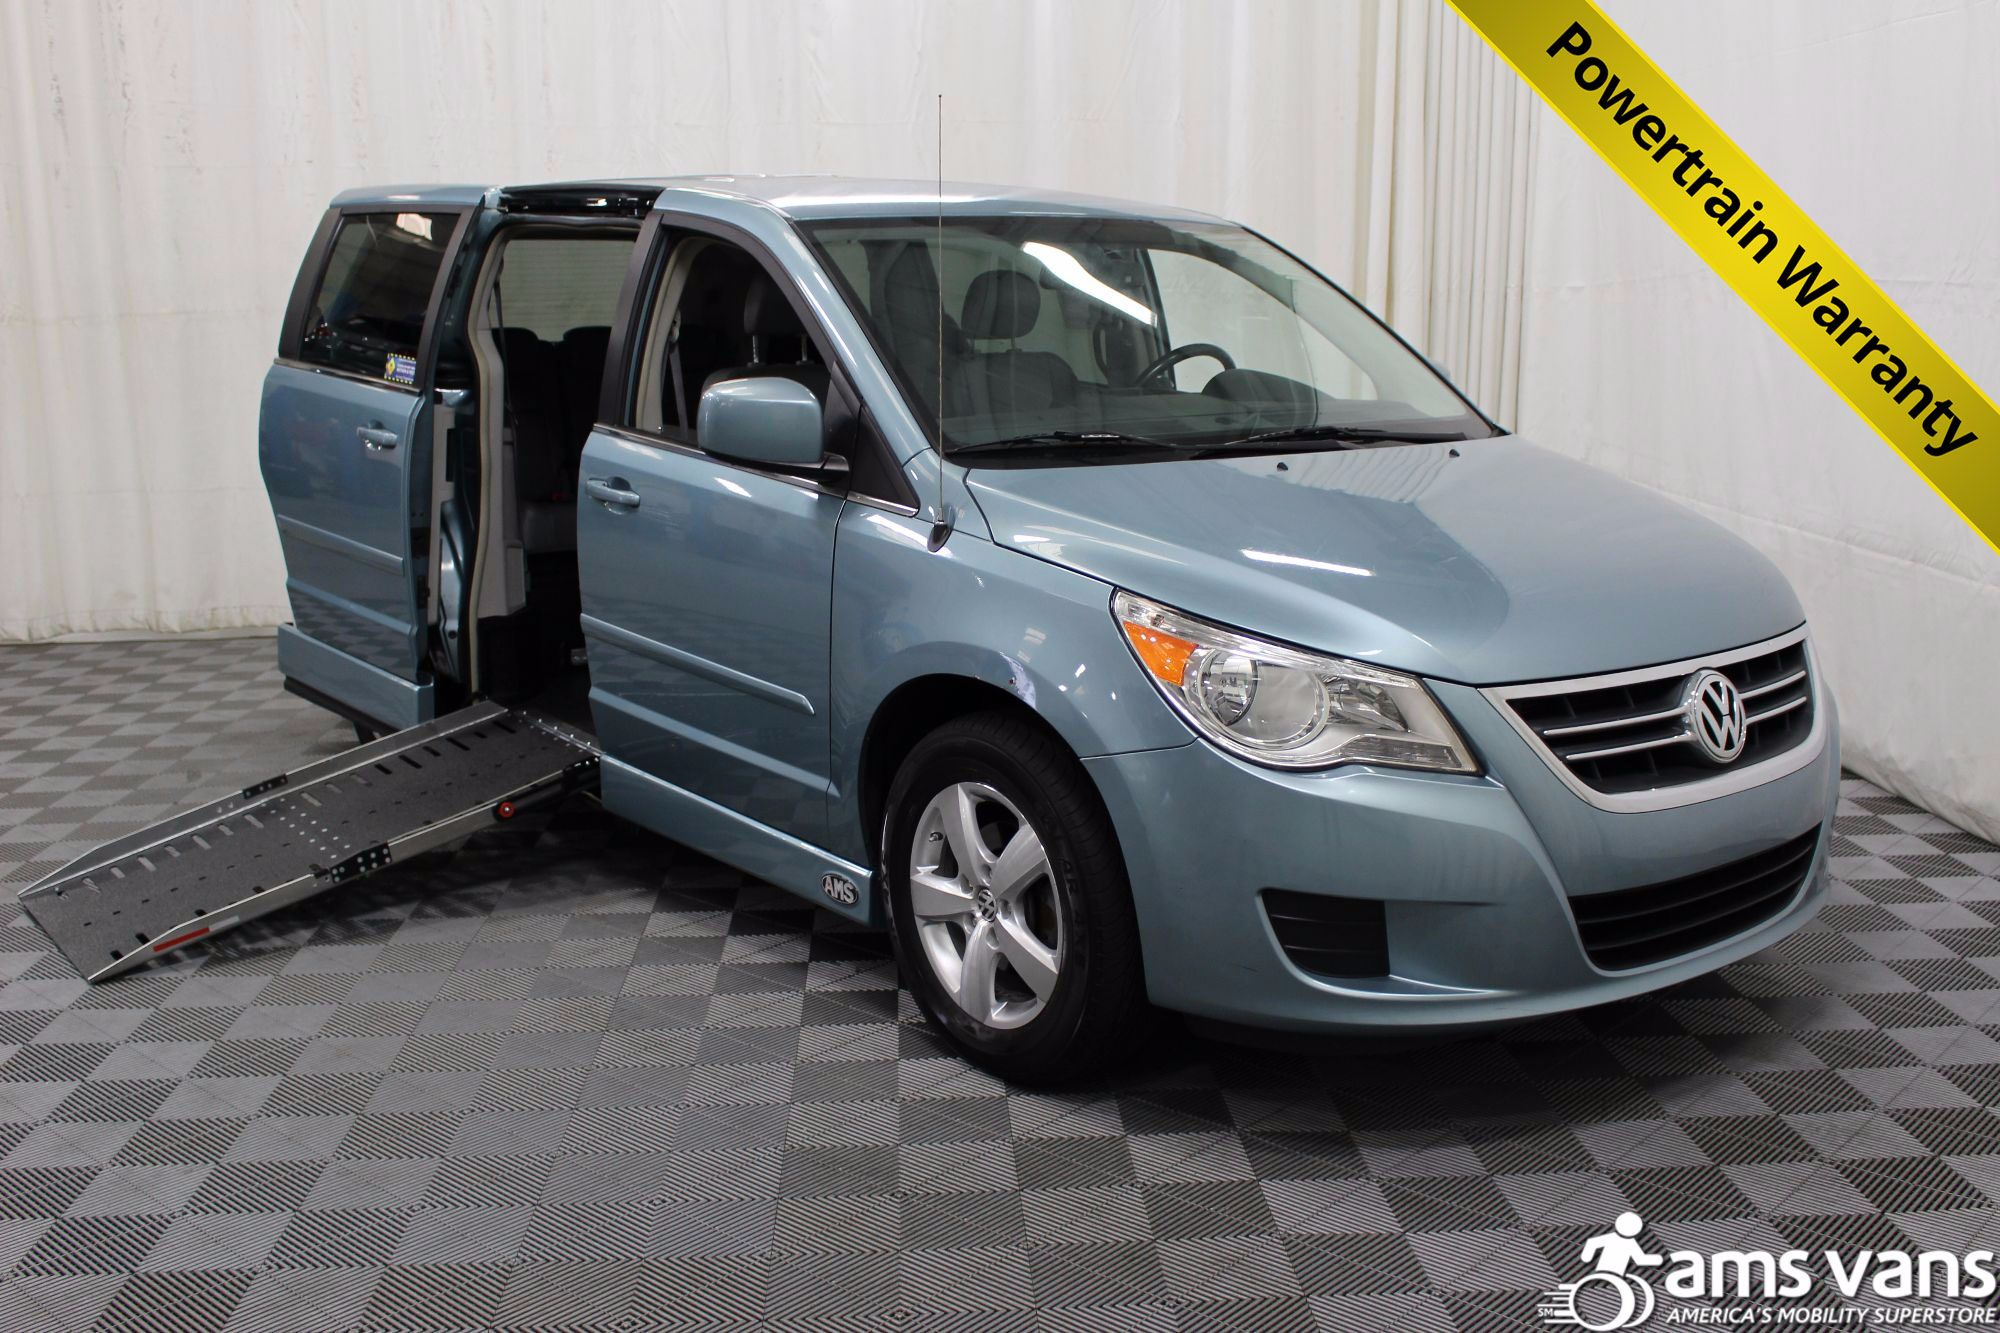 2010 Volkswagen Routan Wheelchair Van For Sale #1